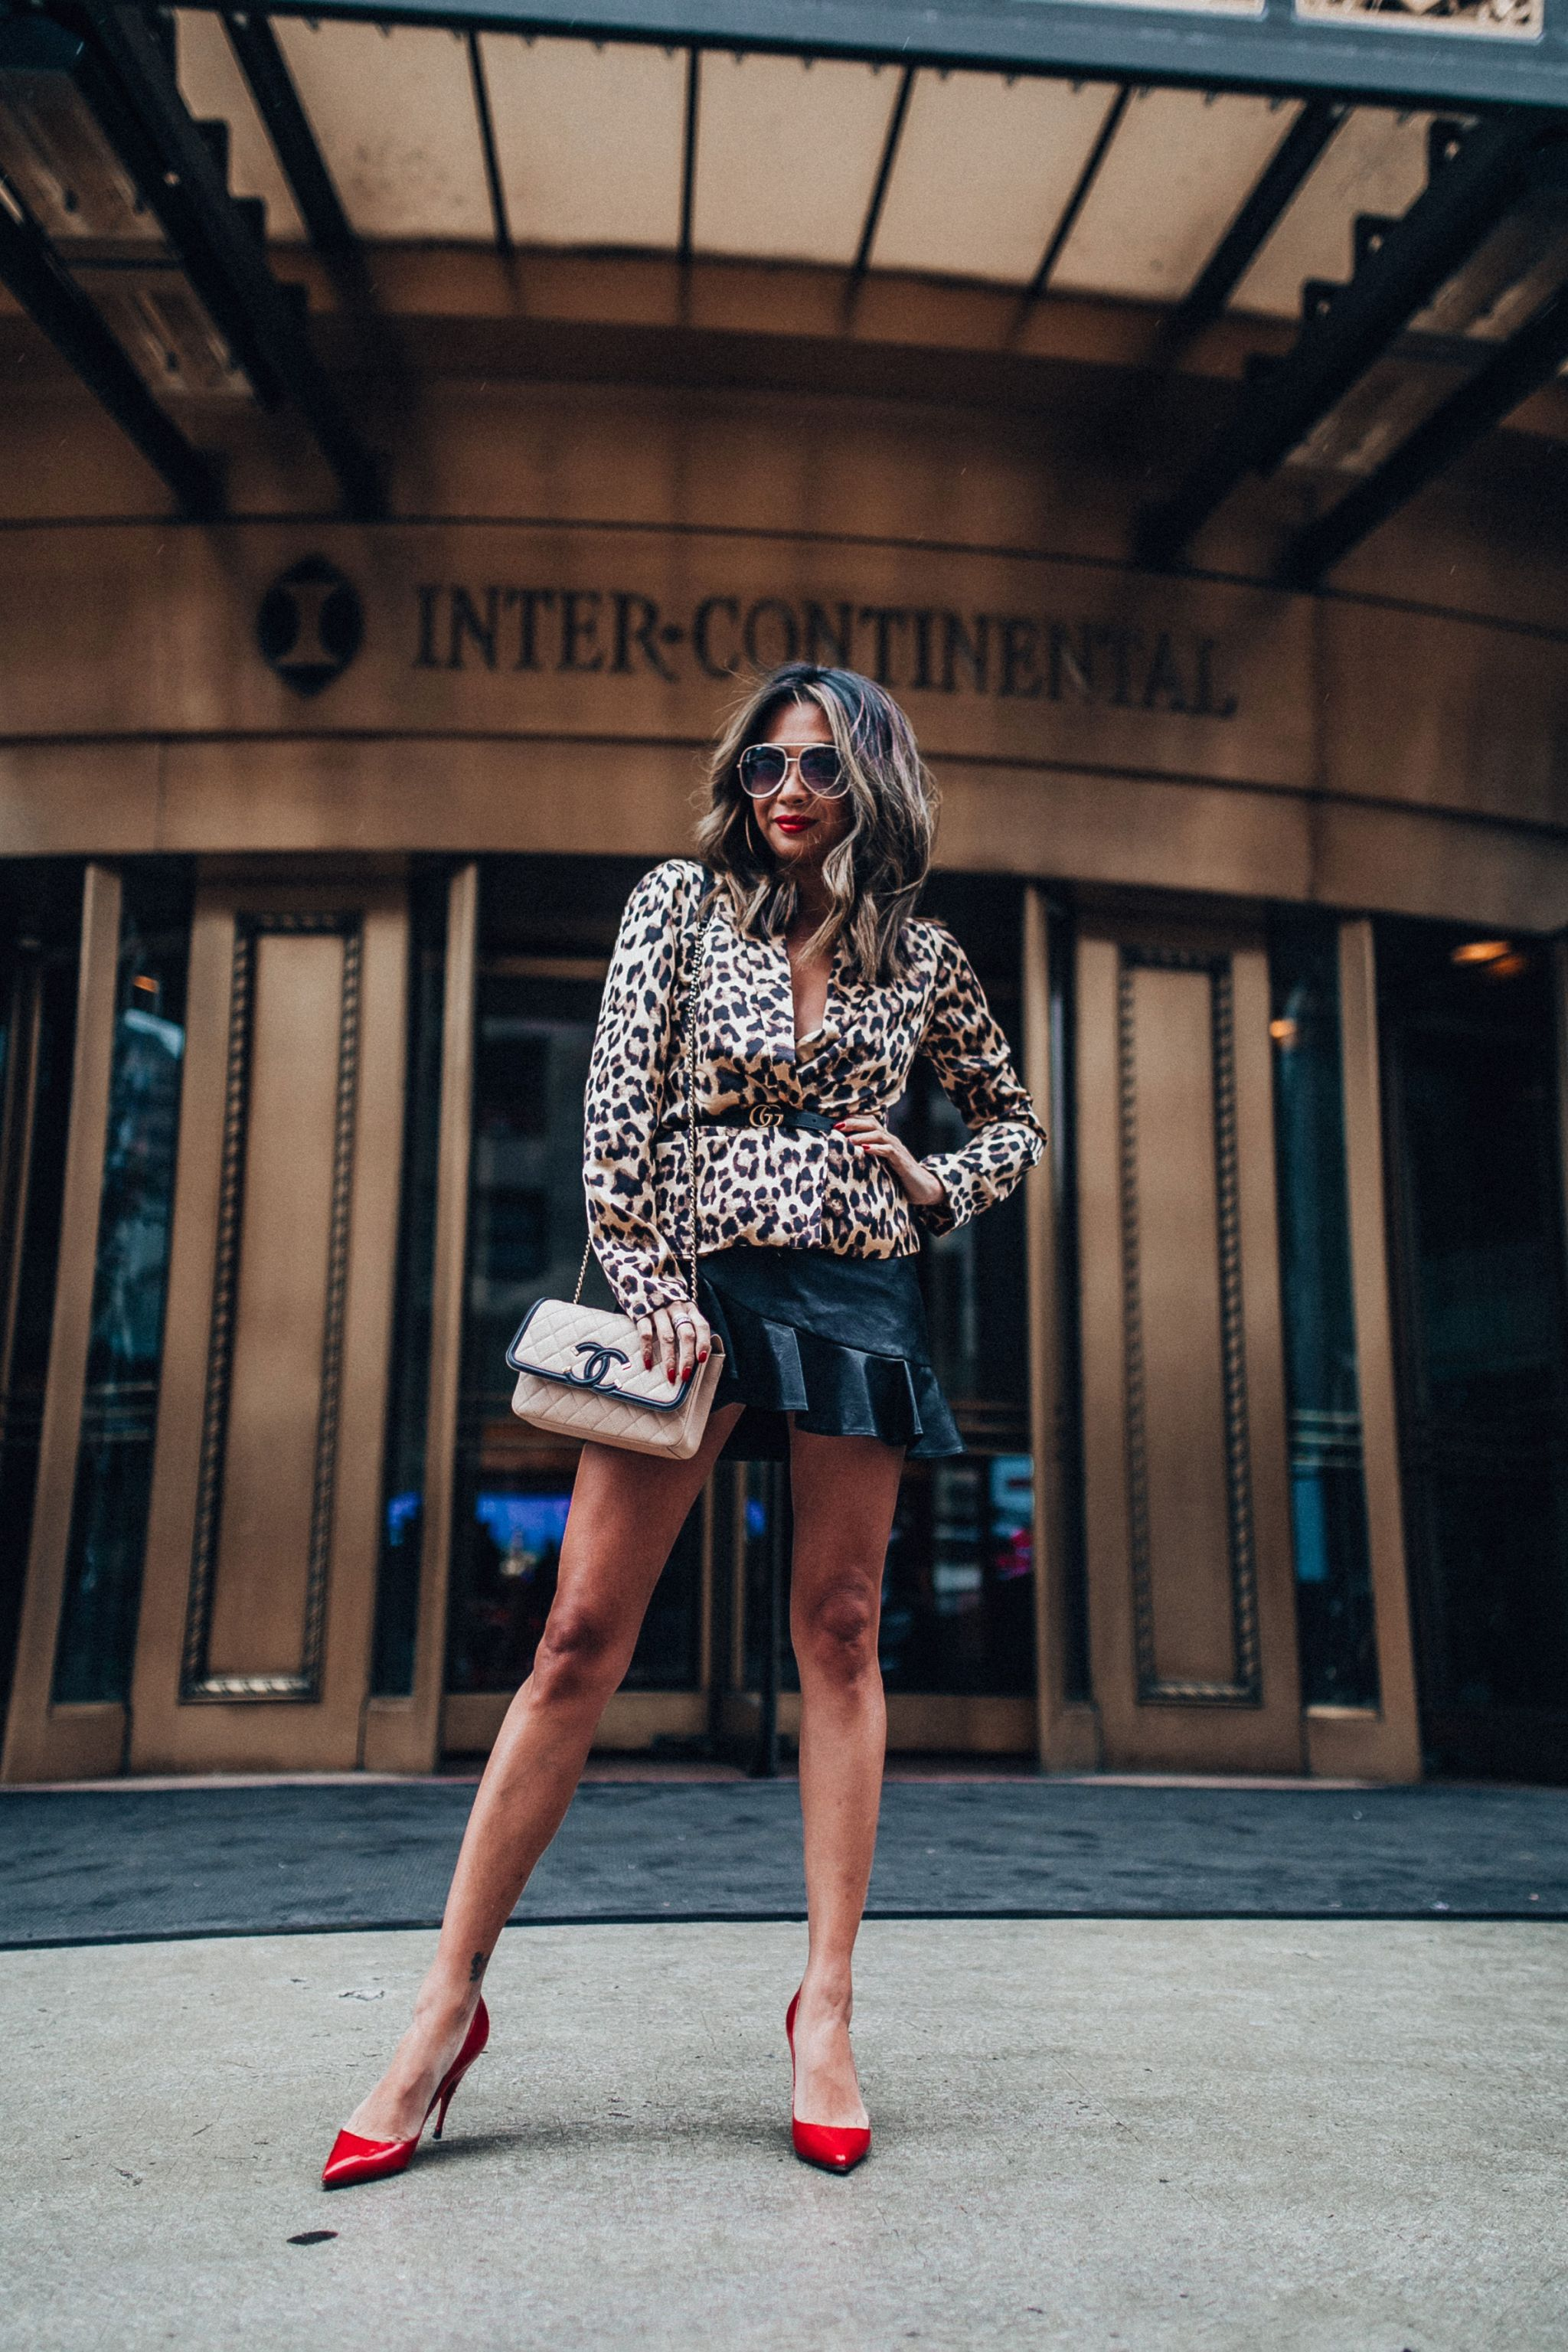 InterContinental michigan ave, best hotel chicago, chicago michigan avenue hotel, jennifer worman, travel blogger, chicago travel blogger, where to stay in chicago, leopard blazer, fall style in chicago